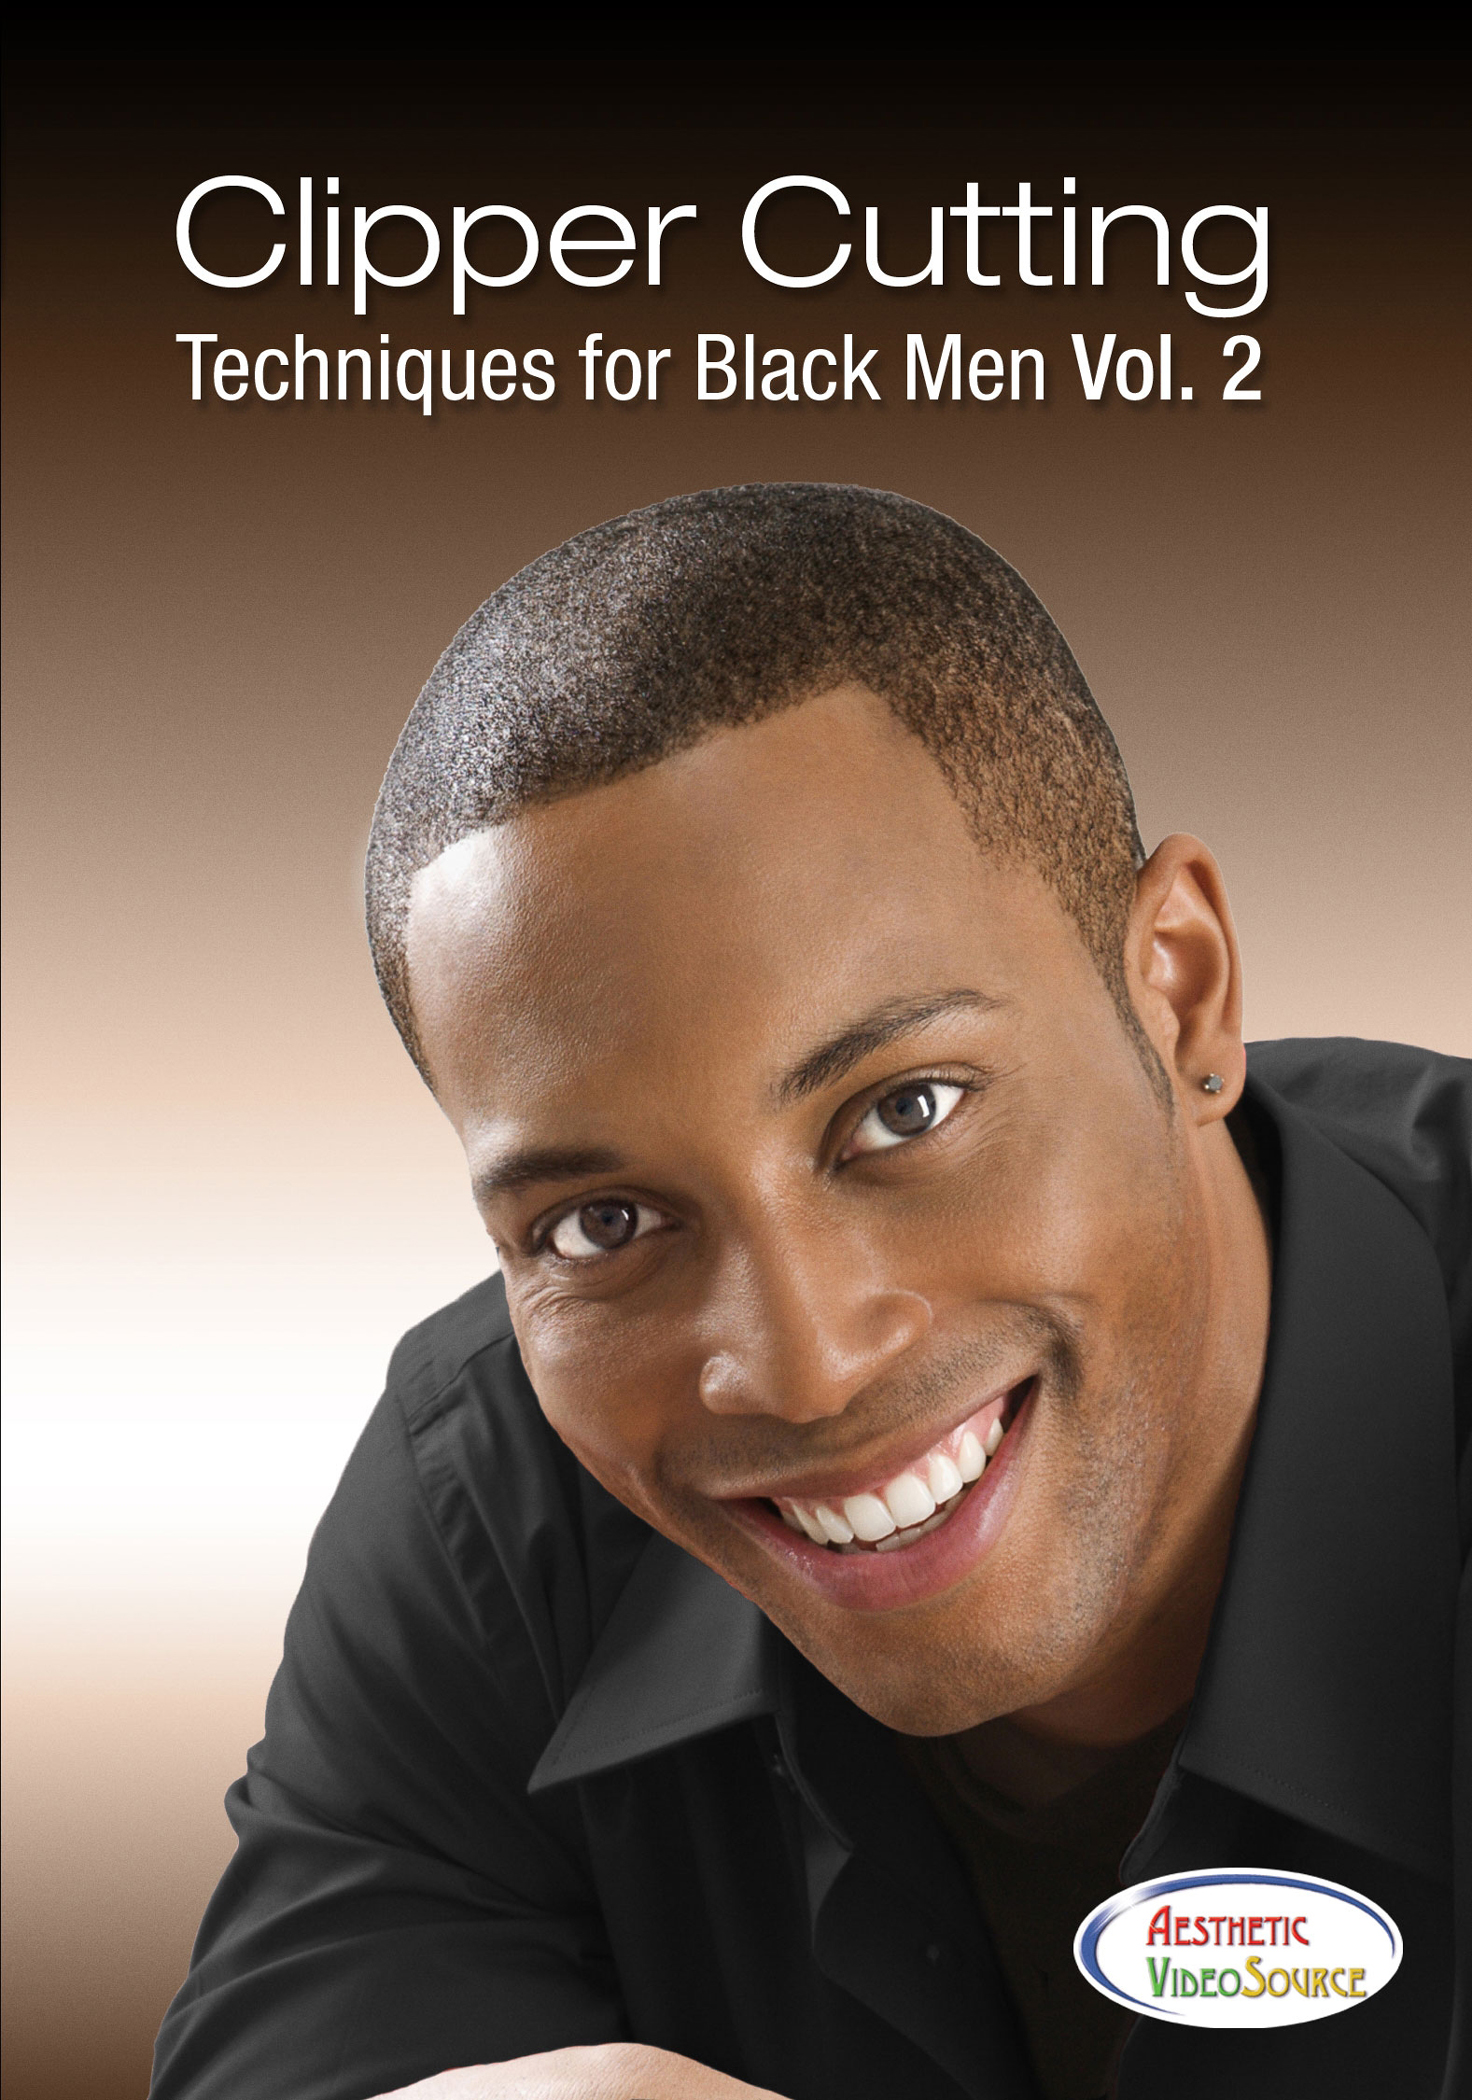 Learn How To Cut Hair With Clipper Cutting Techniques For Black Men Instructional